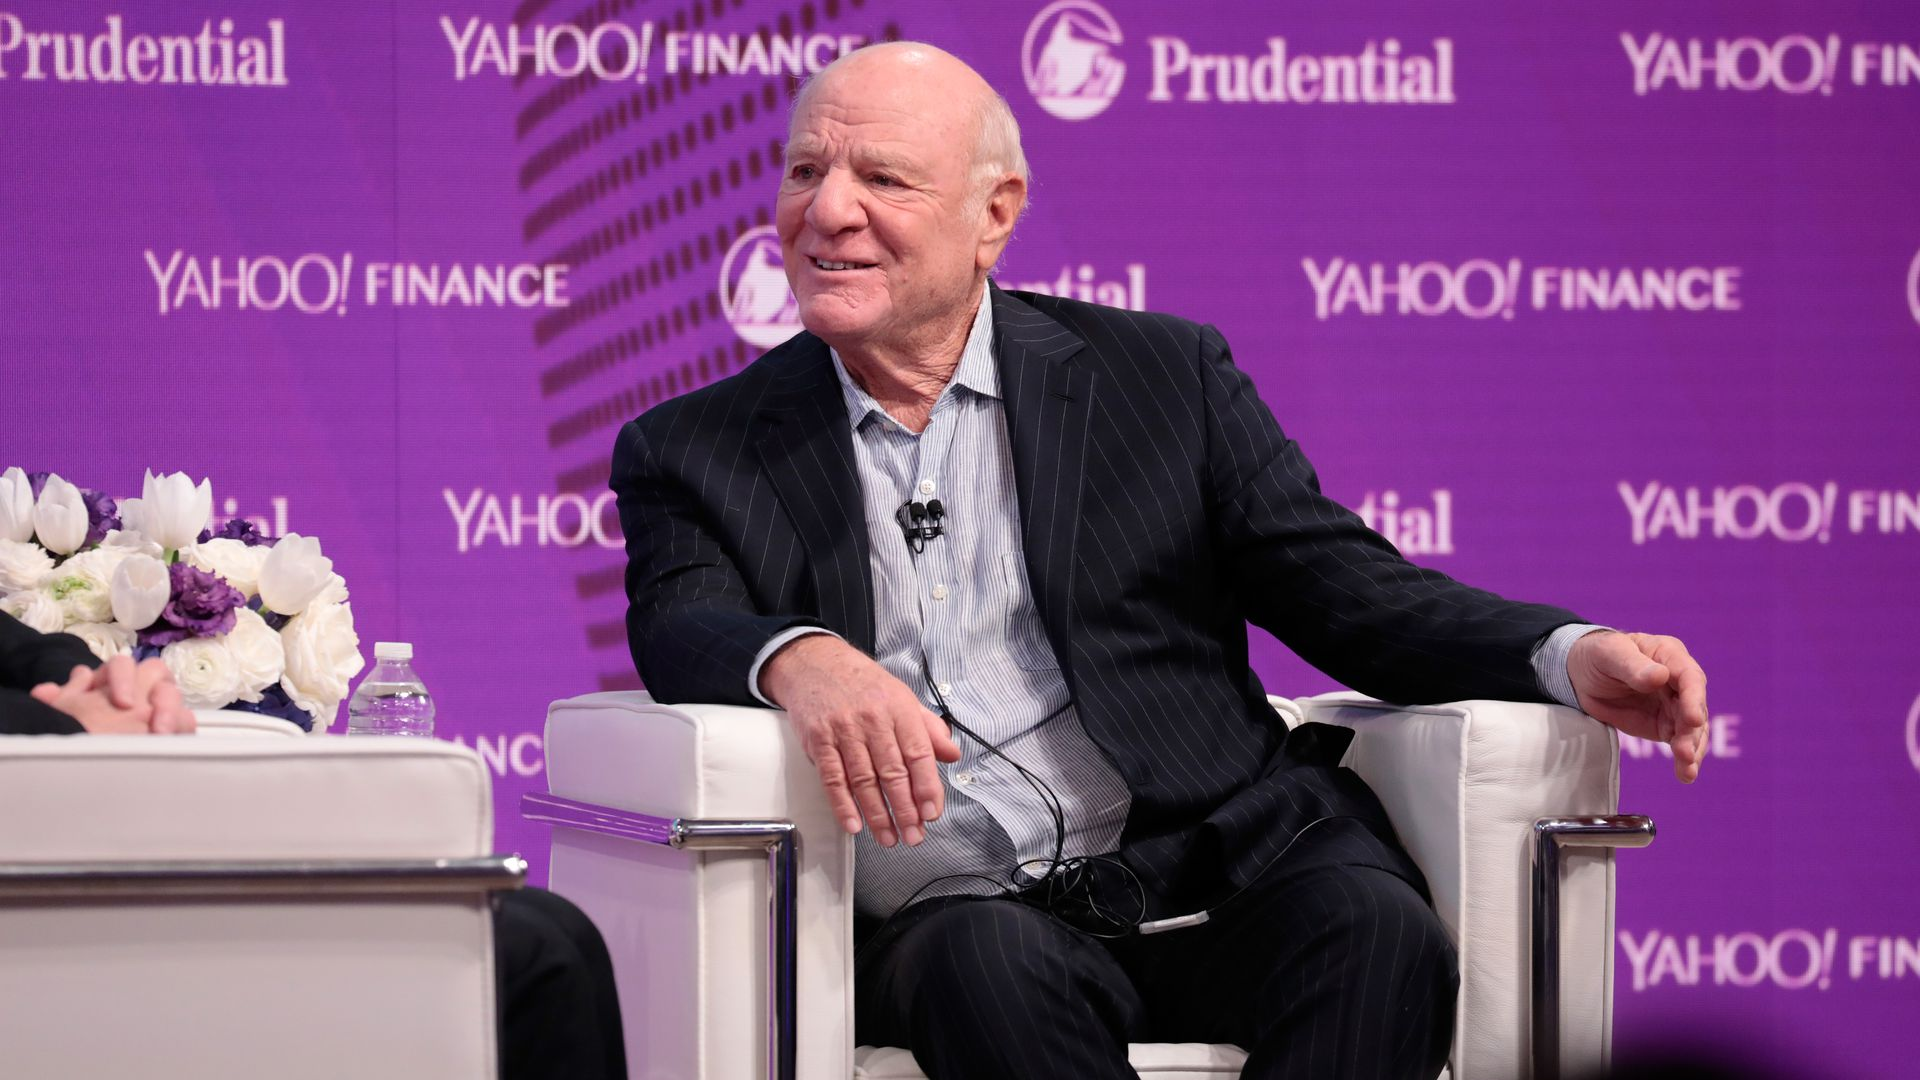 IAC & Expedia, Inc. Chairman & Senior Executive Barry Diller